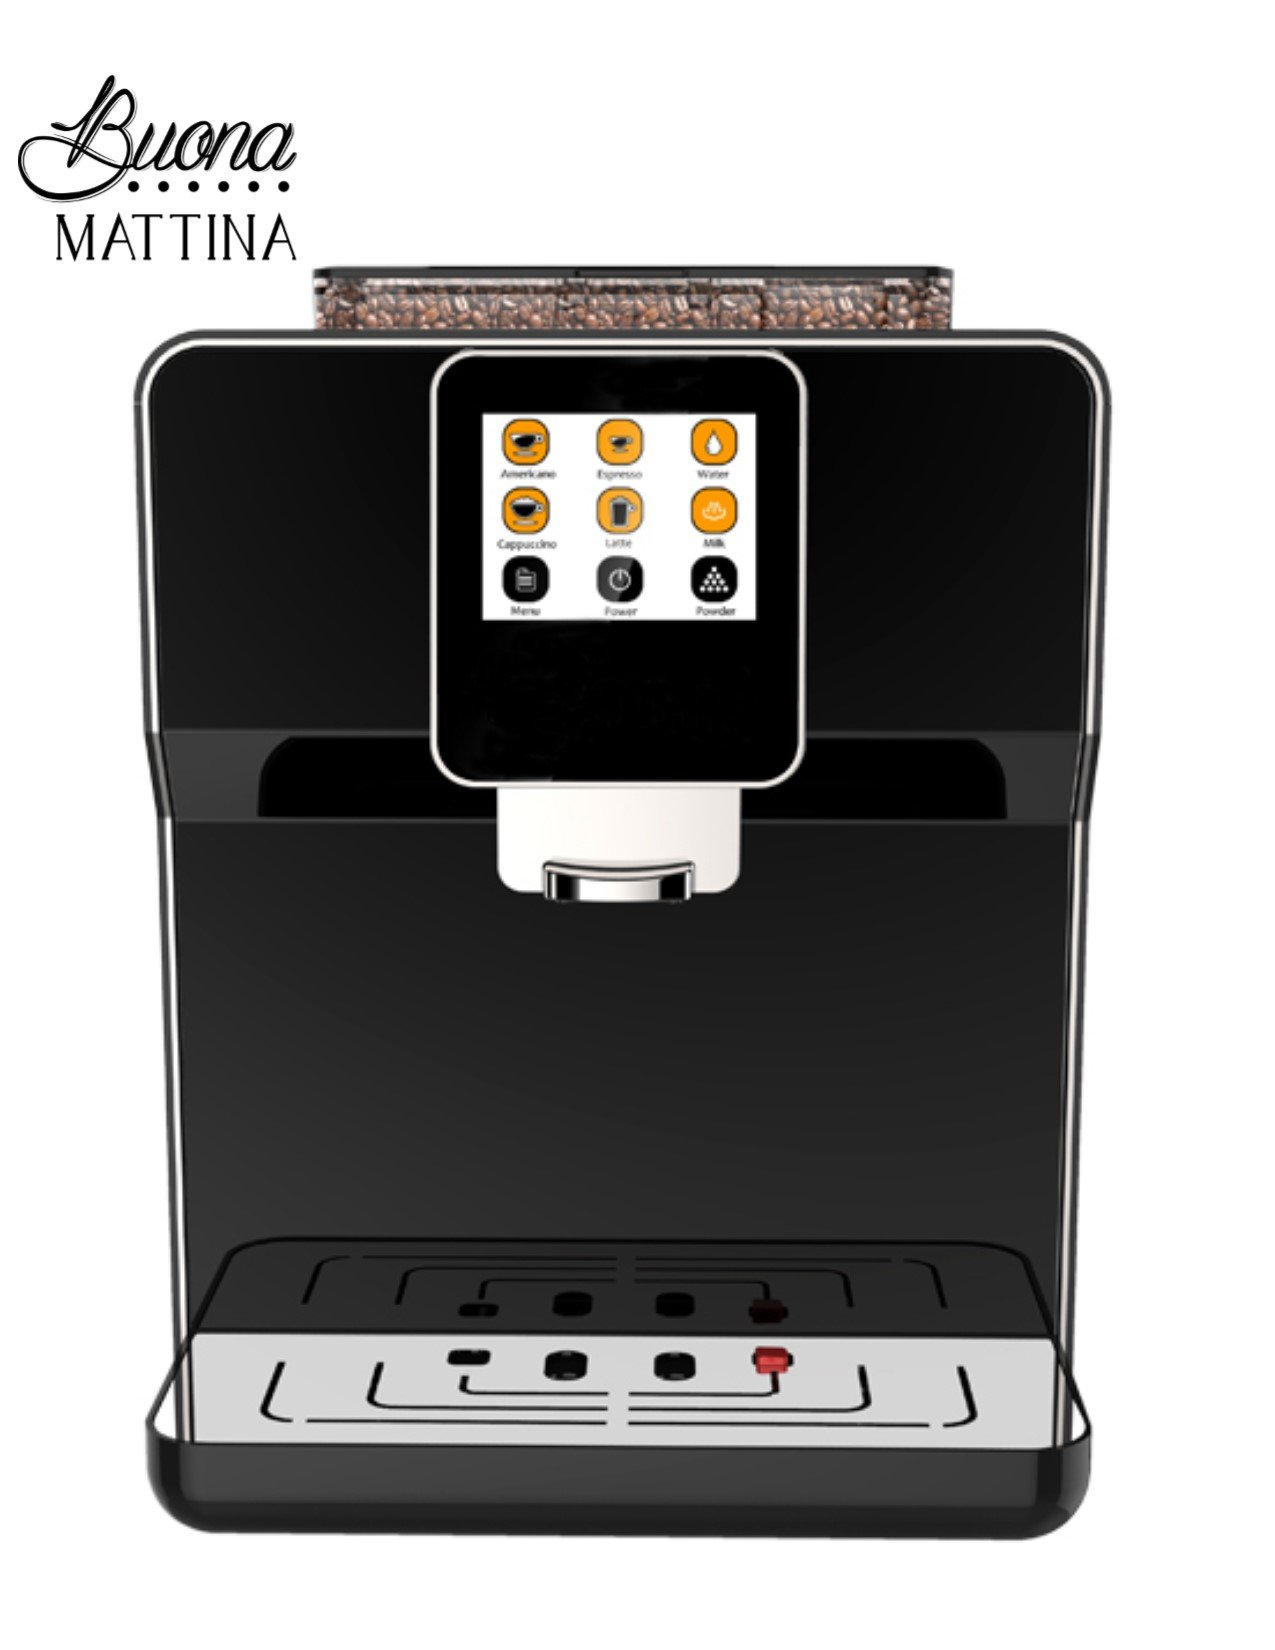 Buona Mattina Fully Automatic Espresso, Cappuccino and Latte Coffee Machine with Automatic bean Grinder and Milk Frother (Black)